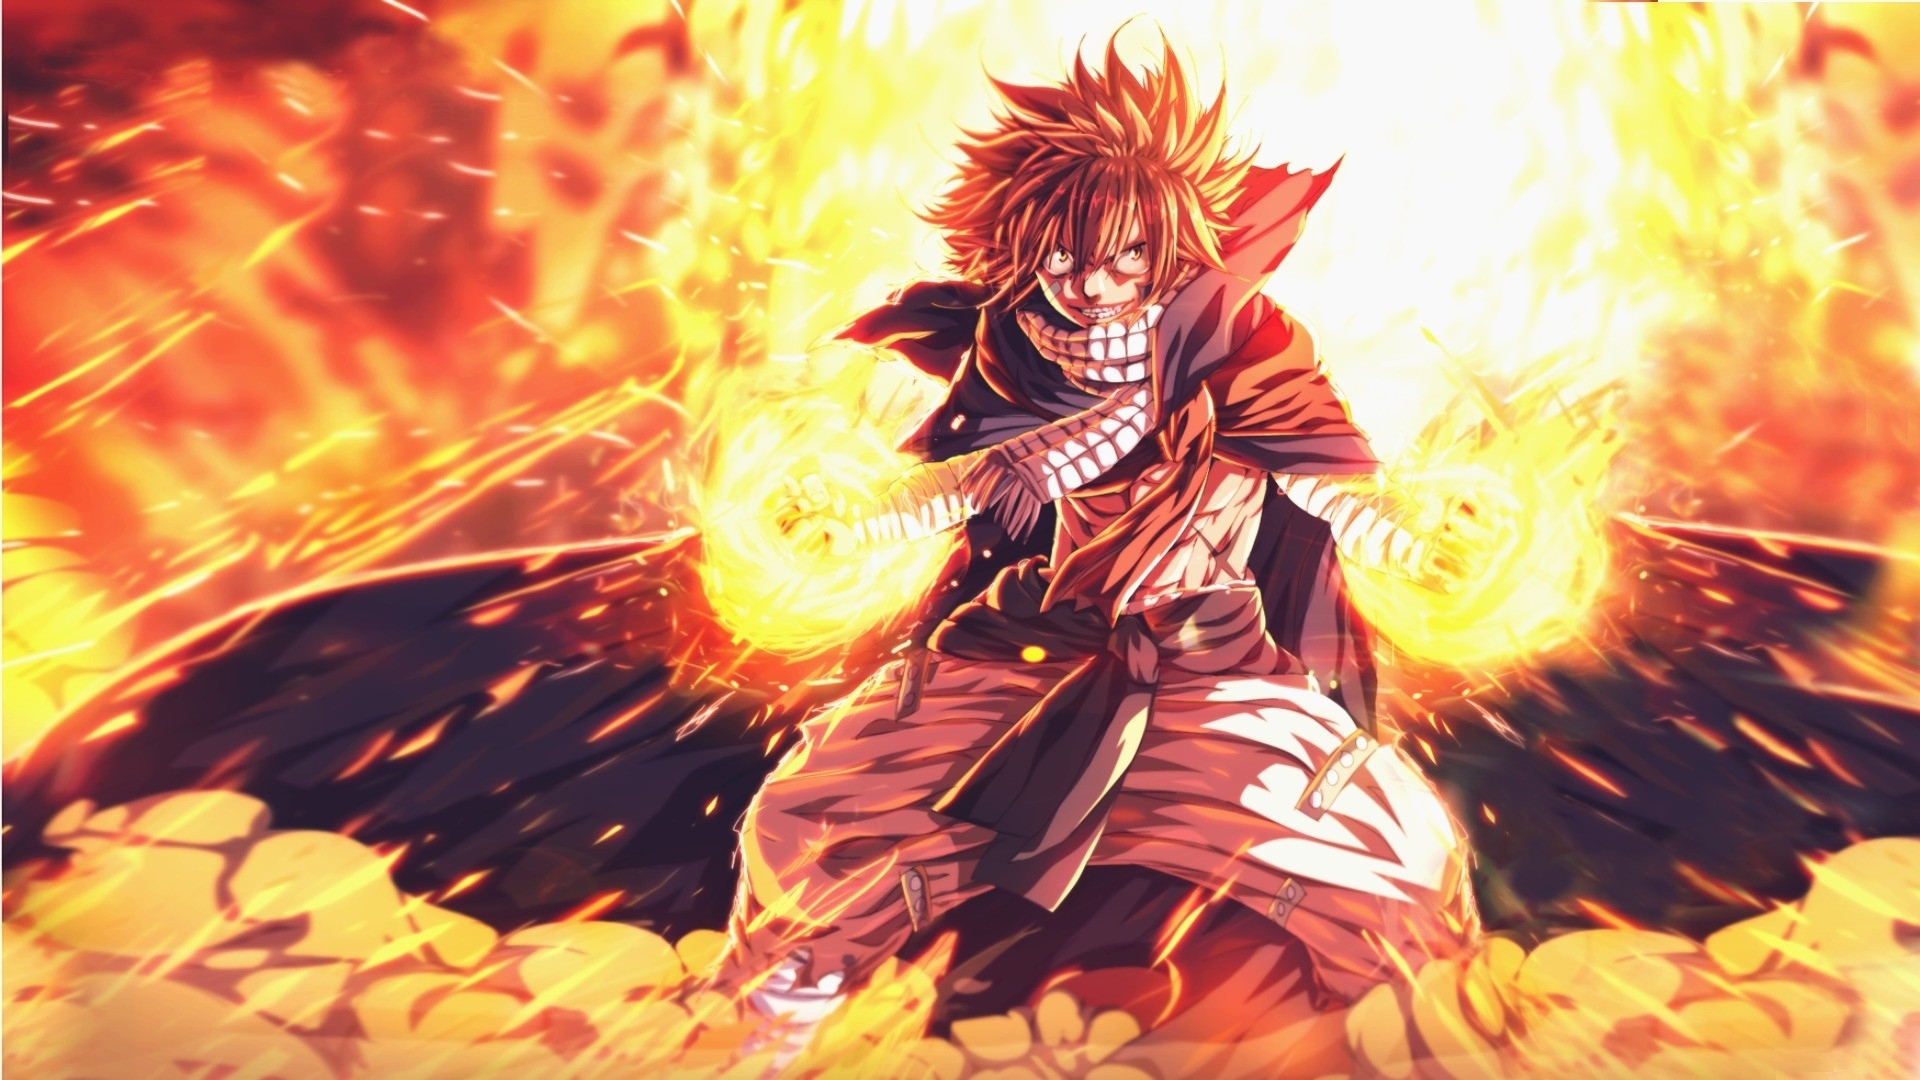 10 Best And Latest Fairy Tail Wallpaper Natsu Dragon Force For Desktop Computer With FULL HD 1080p 1920 X 1080 FREE DOWNLOAD